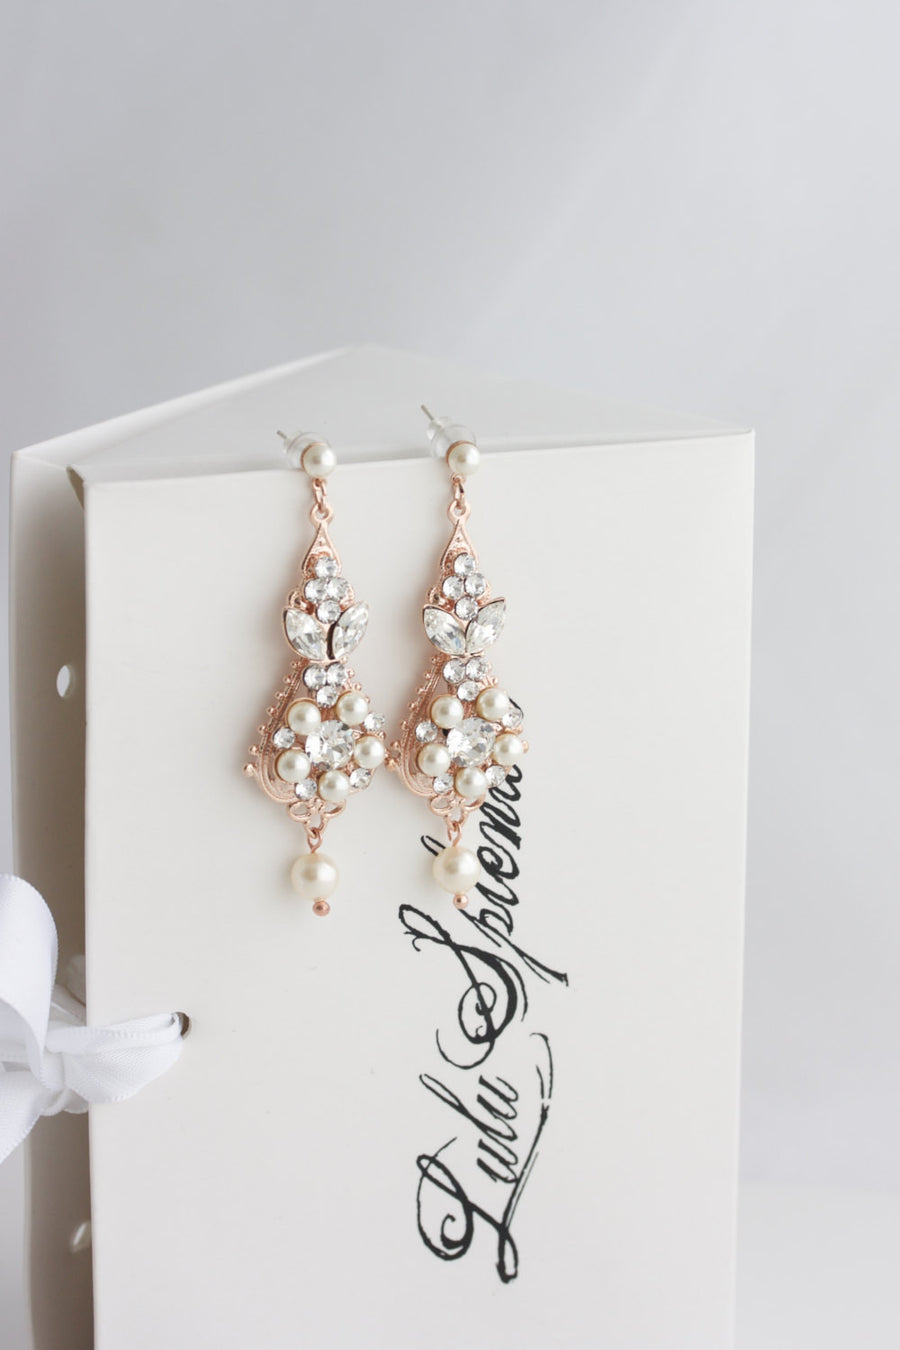 Paris Bridal Earrings - Lulu Splendor